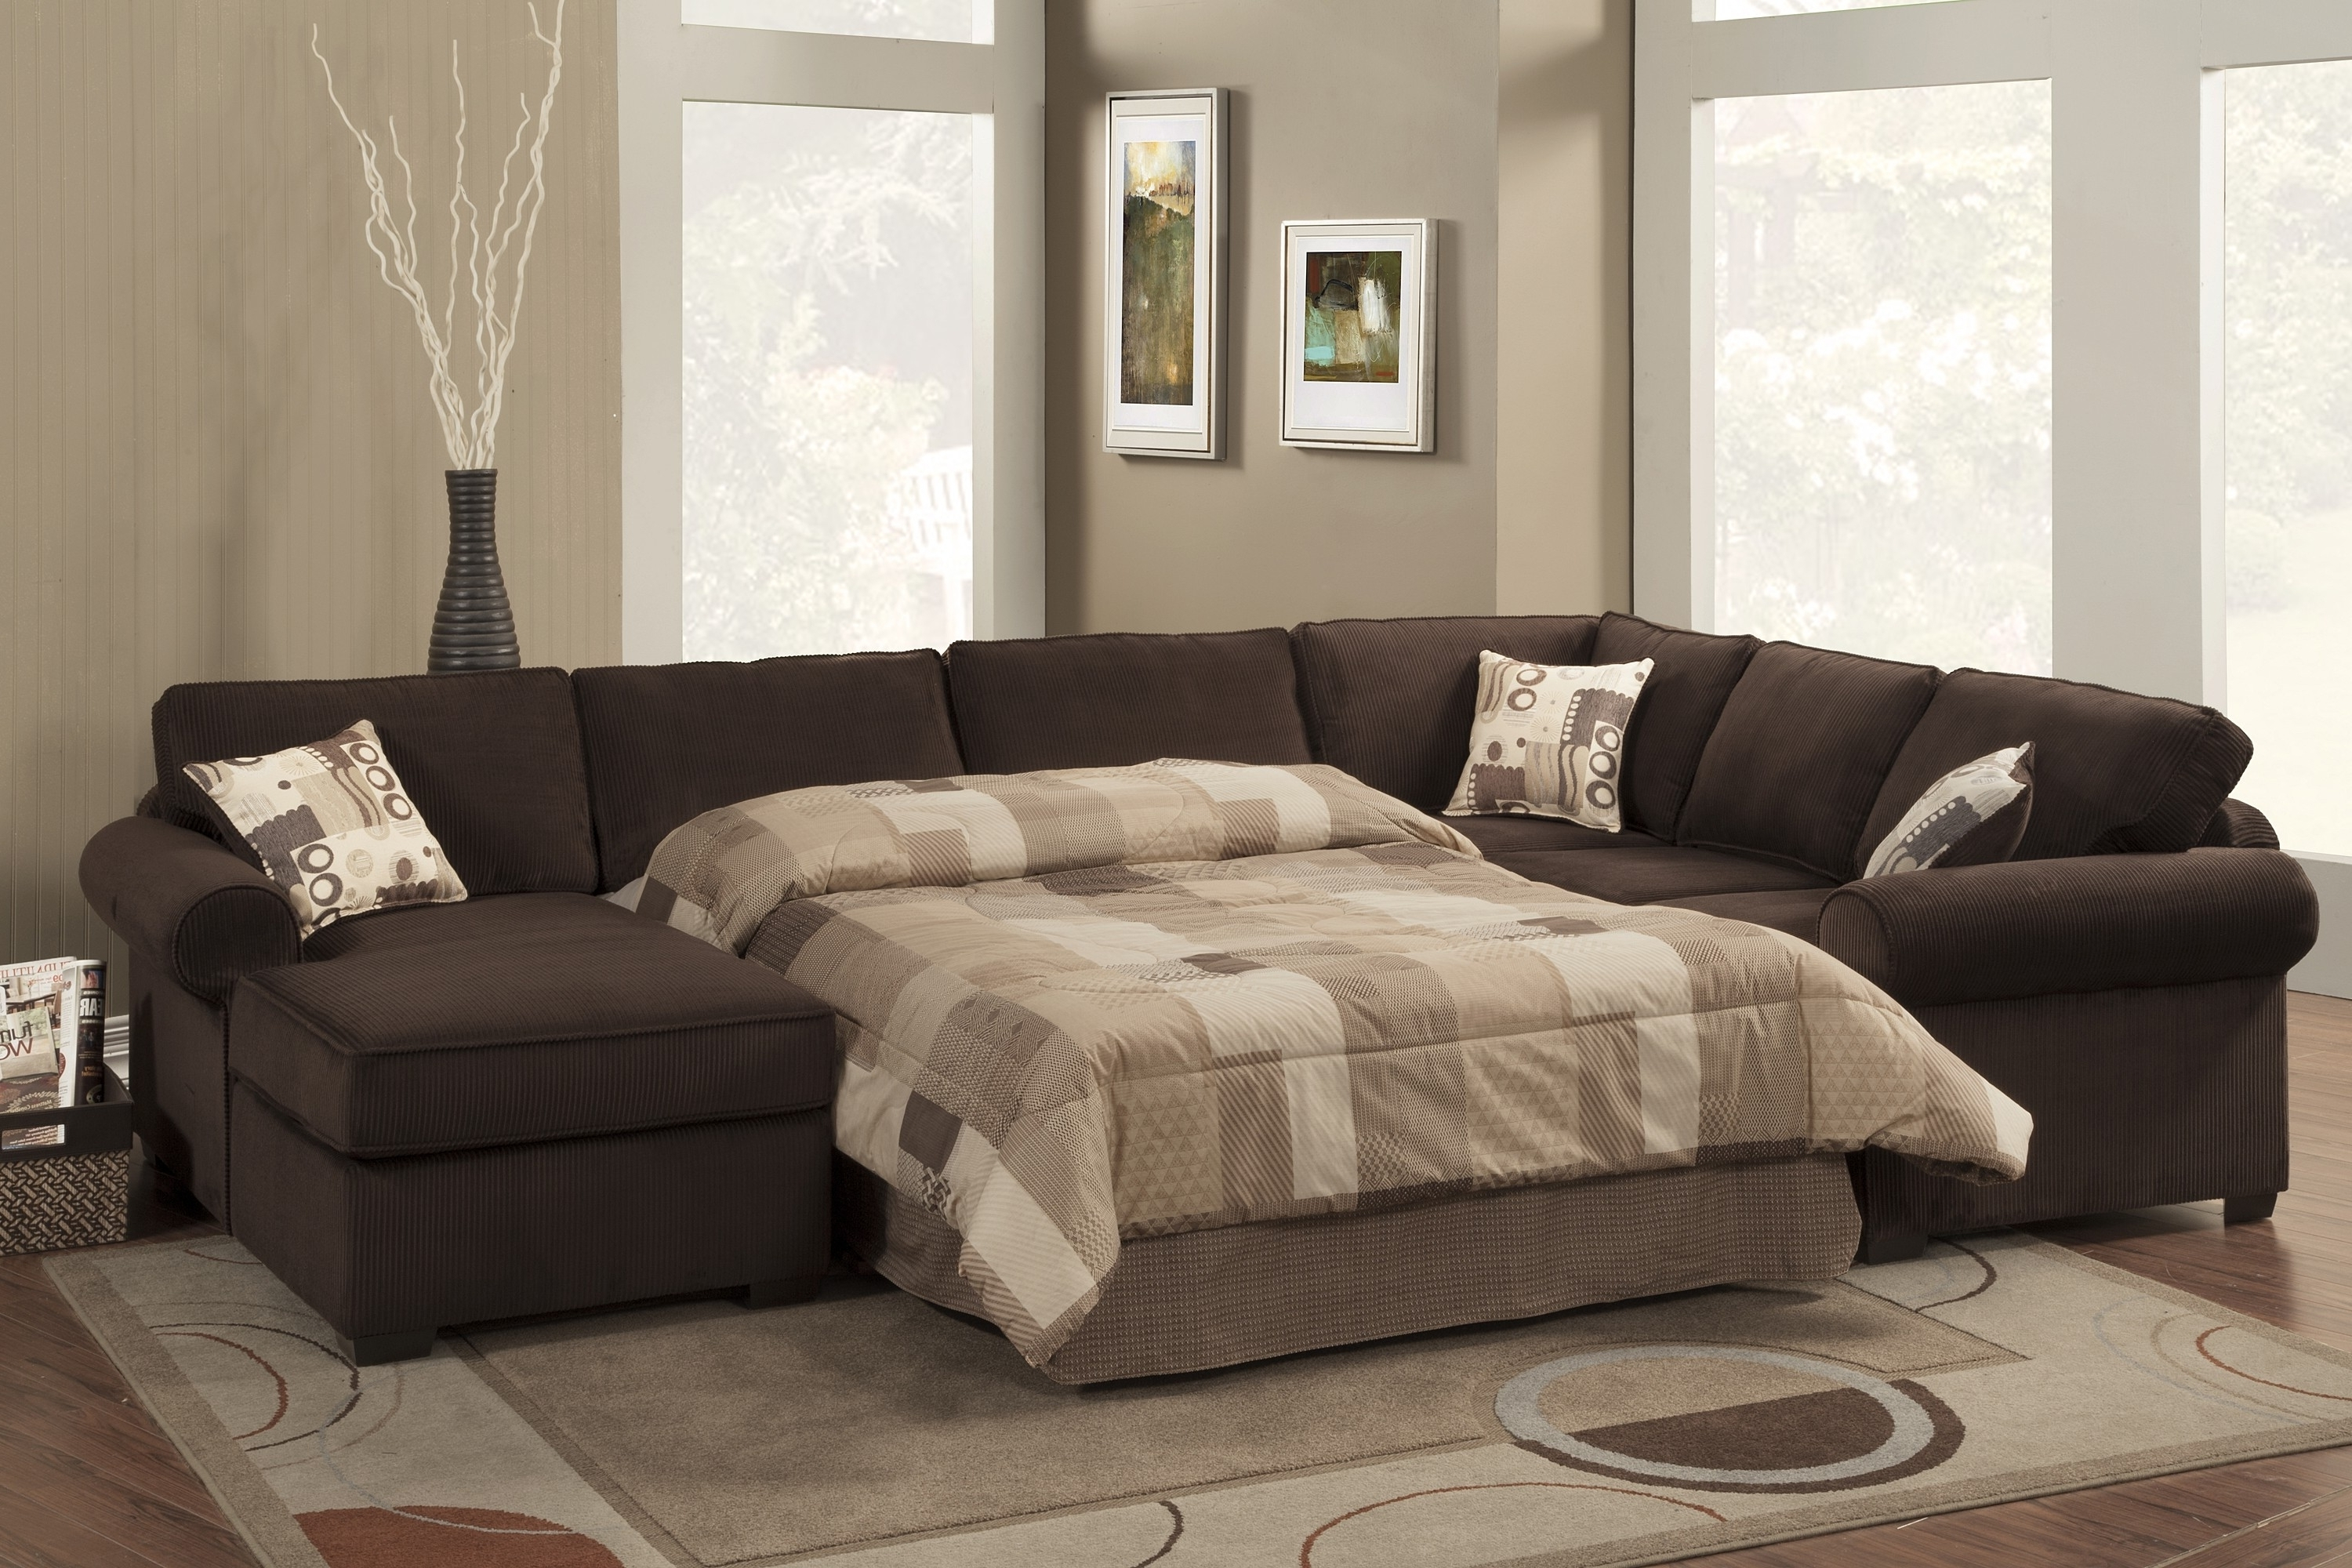 Best And Newest Sectional Sleeper Sofa Nj • Sectional Sofa For Nj Sectional Sofas (View 3 of 15)